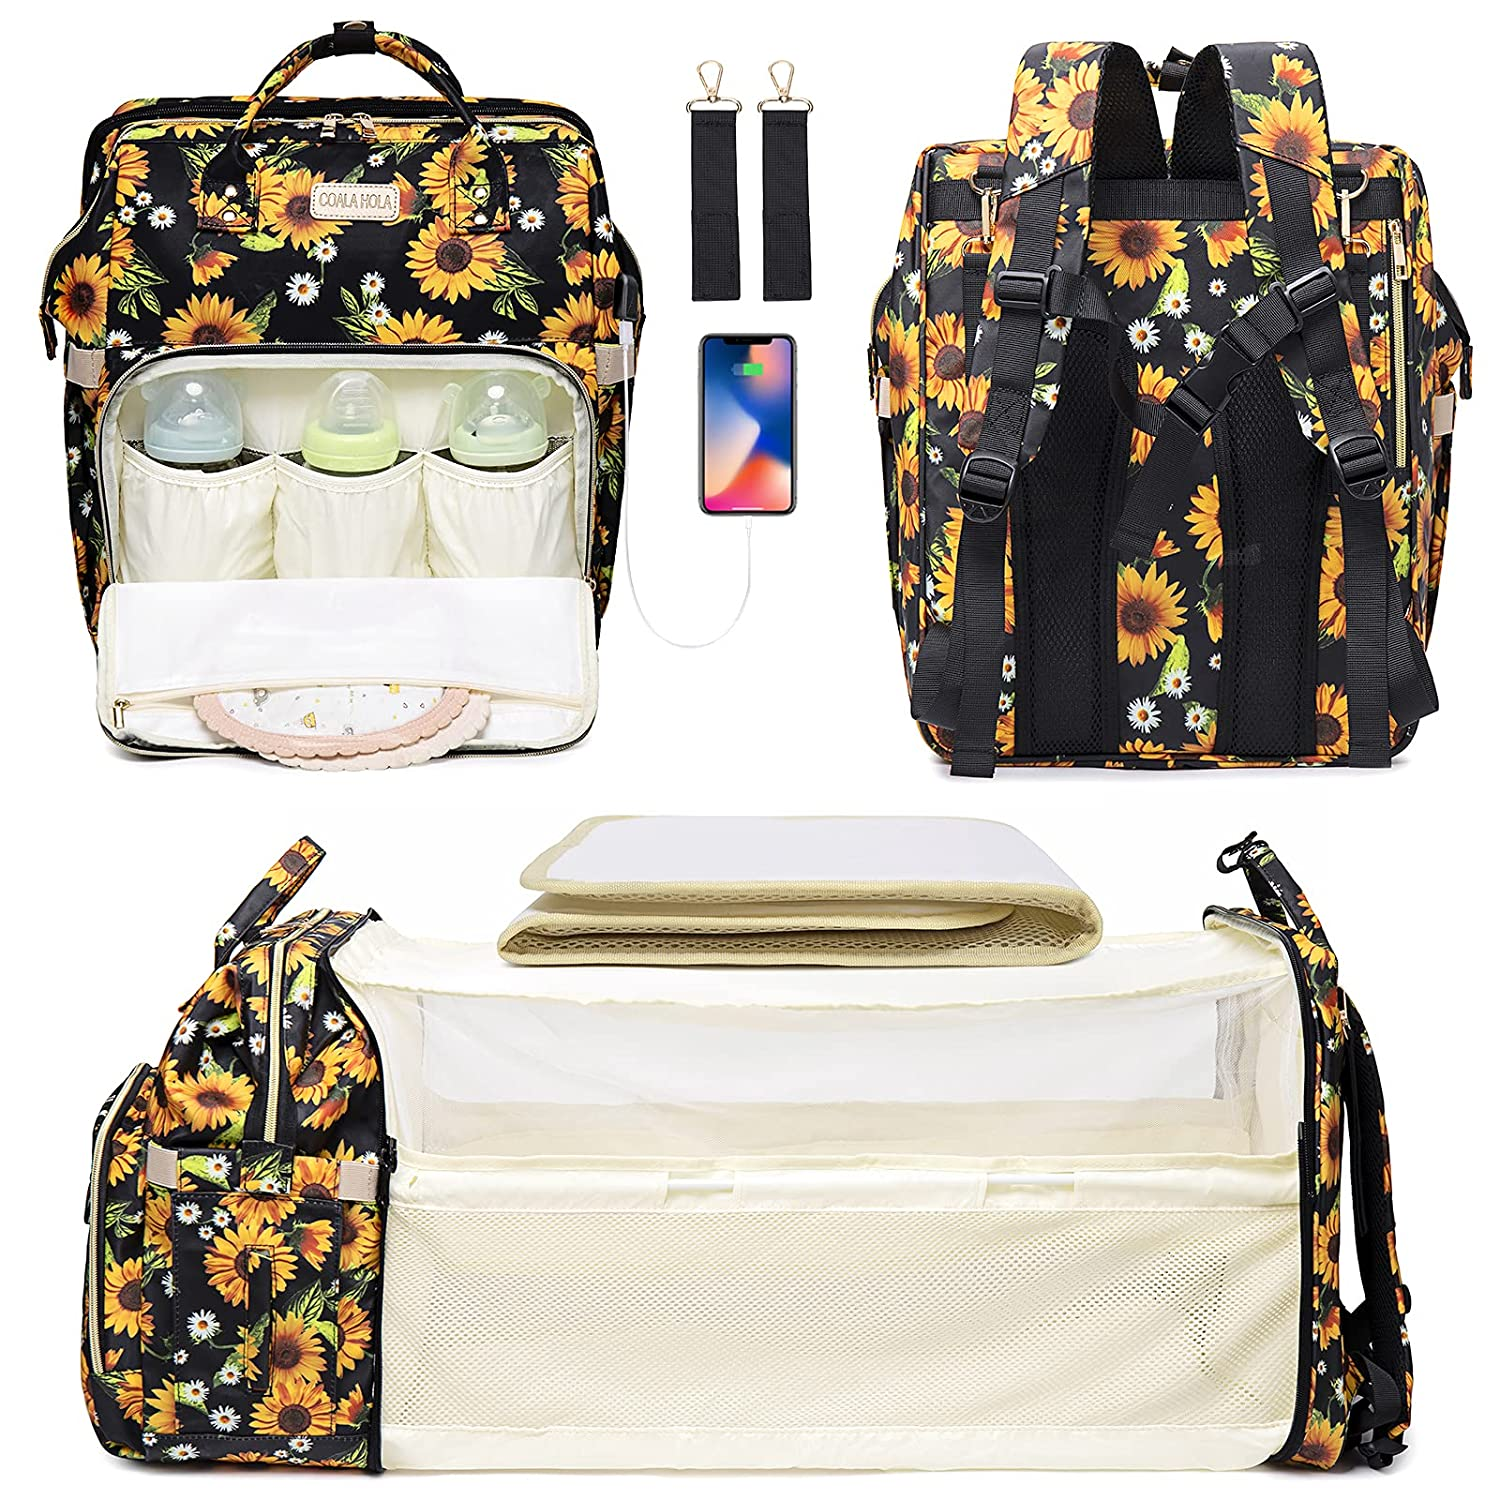 Diaper Bag Backpack with Porable Bassinet Bed, Sunflower Diaper Bag for Newborn Essentials, Baby Travel Back Pack with Chaning Station Pad, Stroller Straps, Built-in USB Charging Port & Net Sunshade